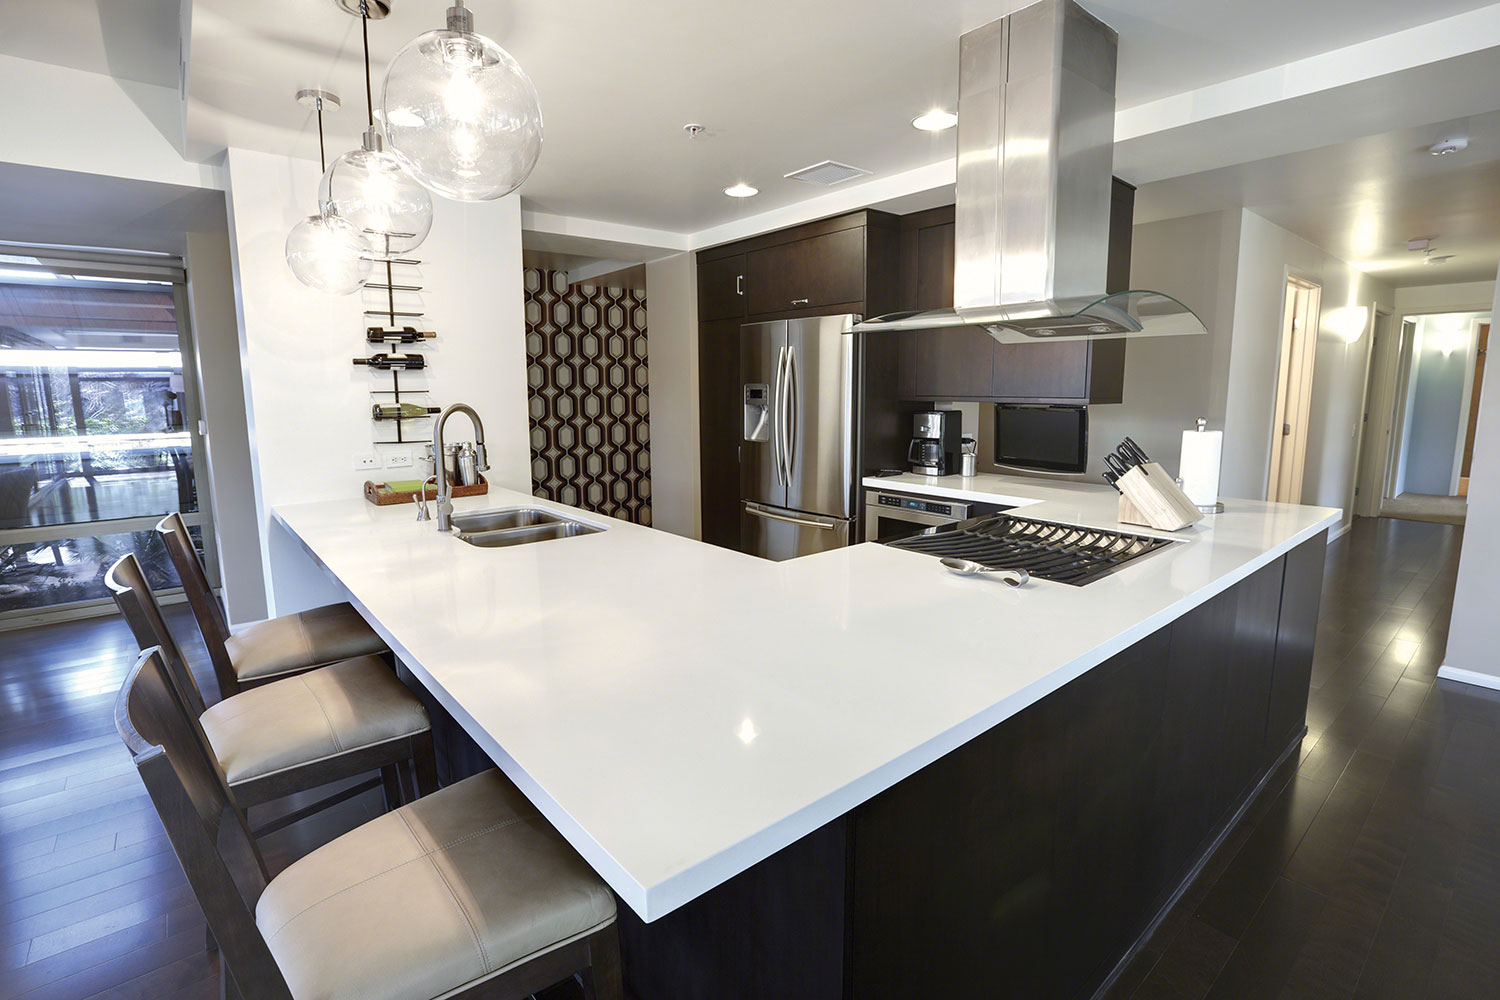 2015 hot kitchen trends part 1 cabinets countertops for Salle a manger quartz